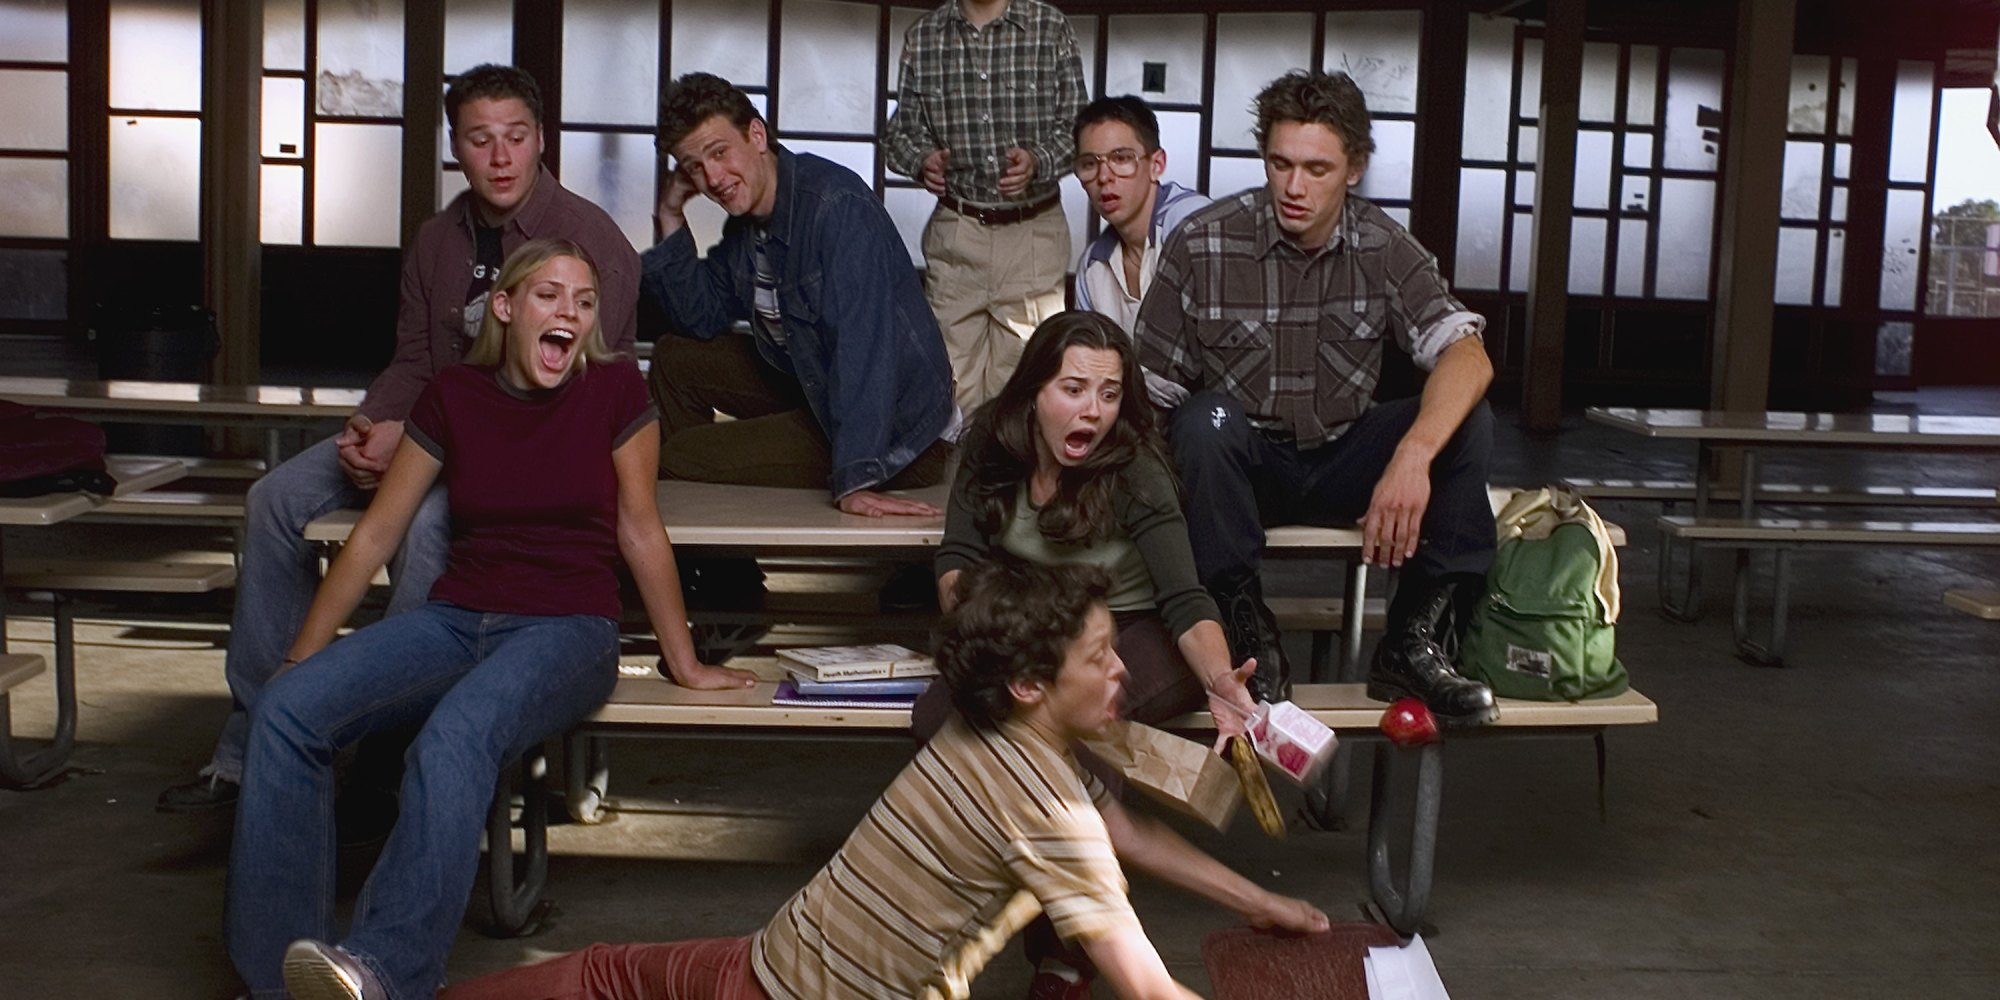 Quotes Wallpaper App 6 Reasons Freaks And Geeks Understands The American